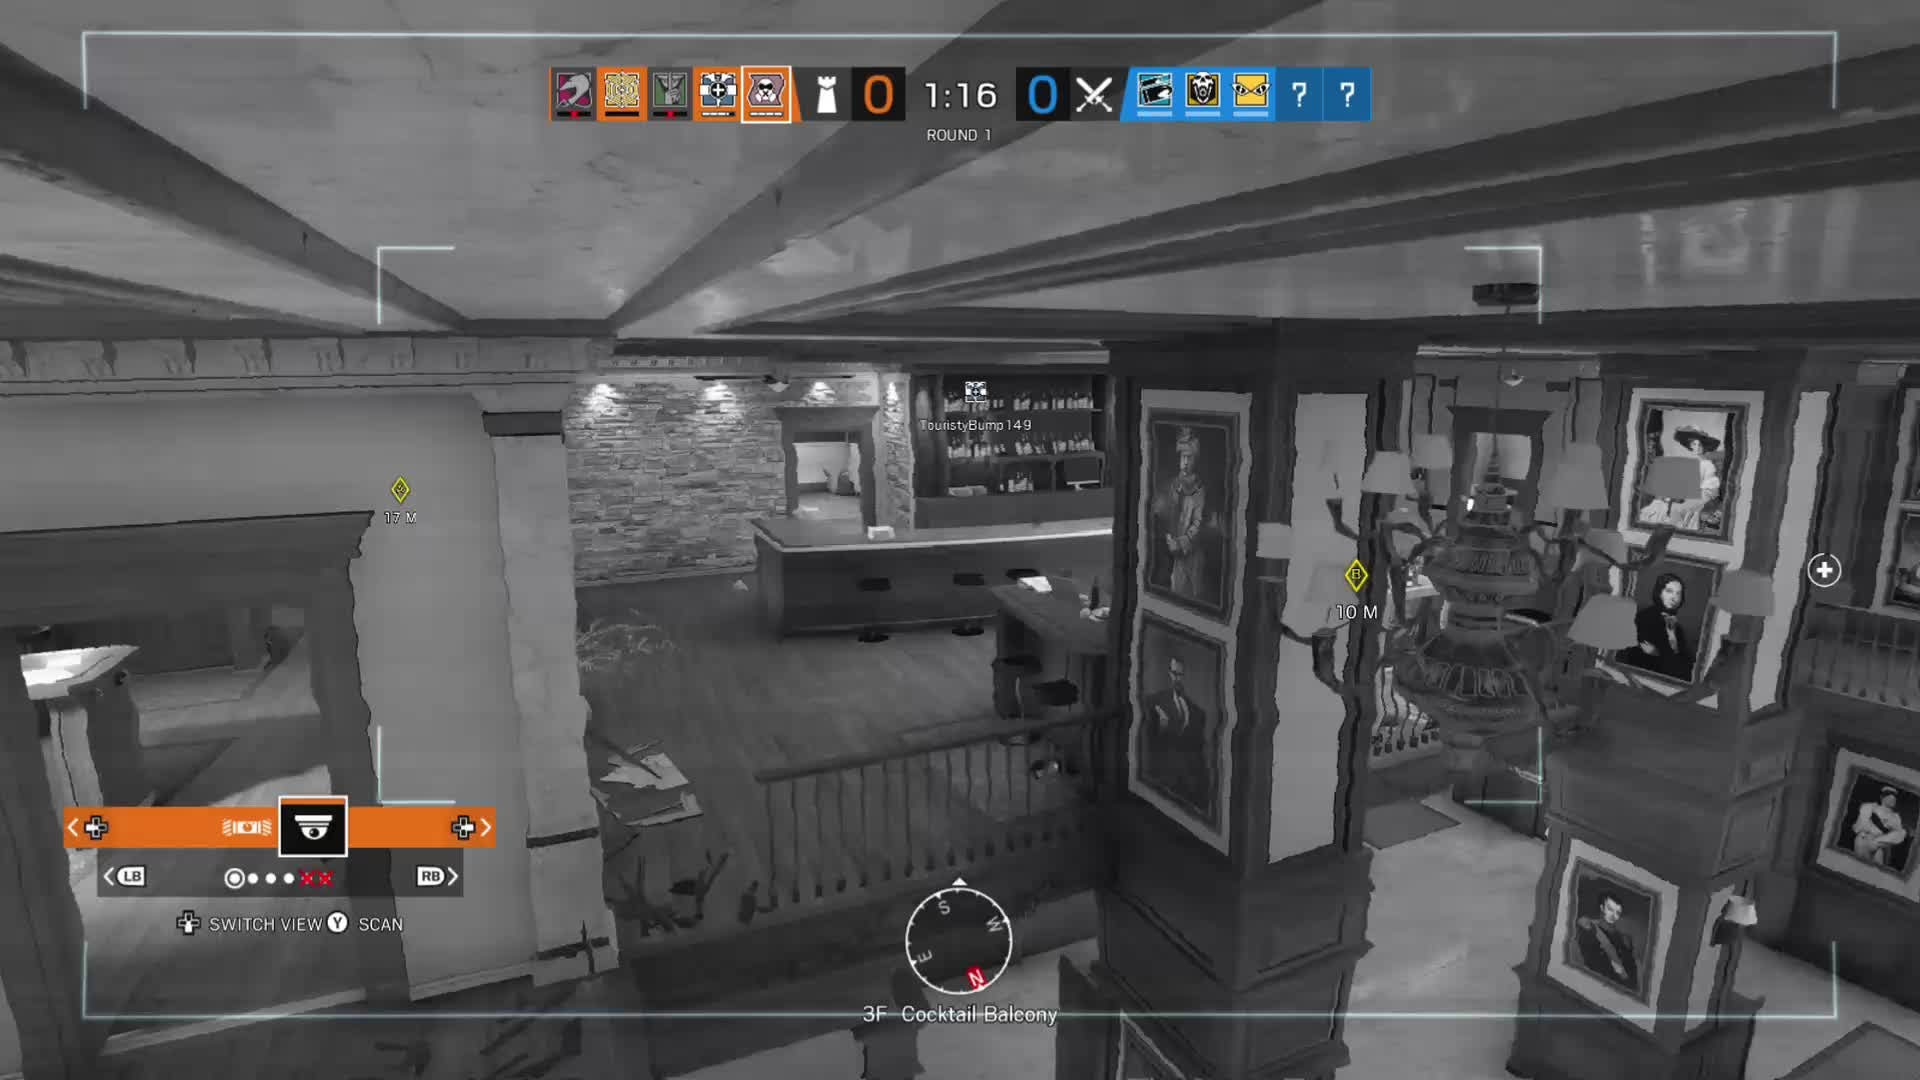 Rainbow Six: General - How to turn a 1 v 5 into a 1 v 1 with 3 simple steps! video cover image 1